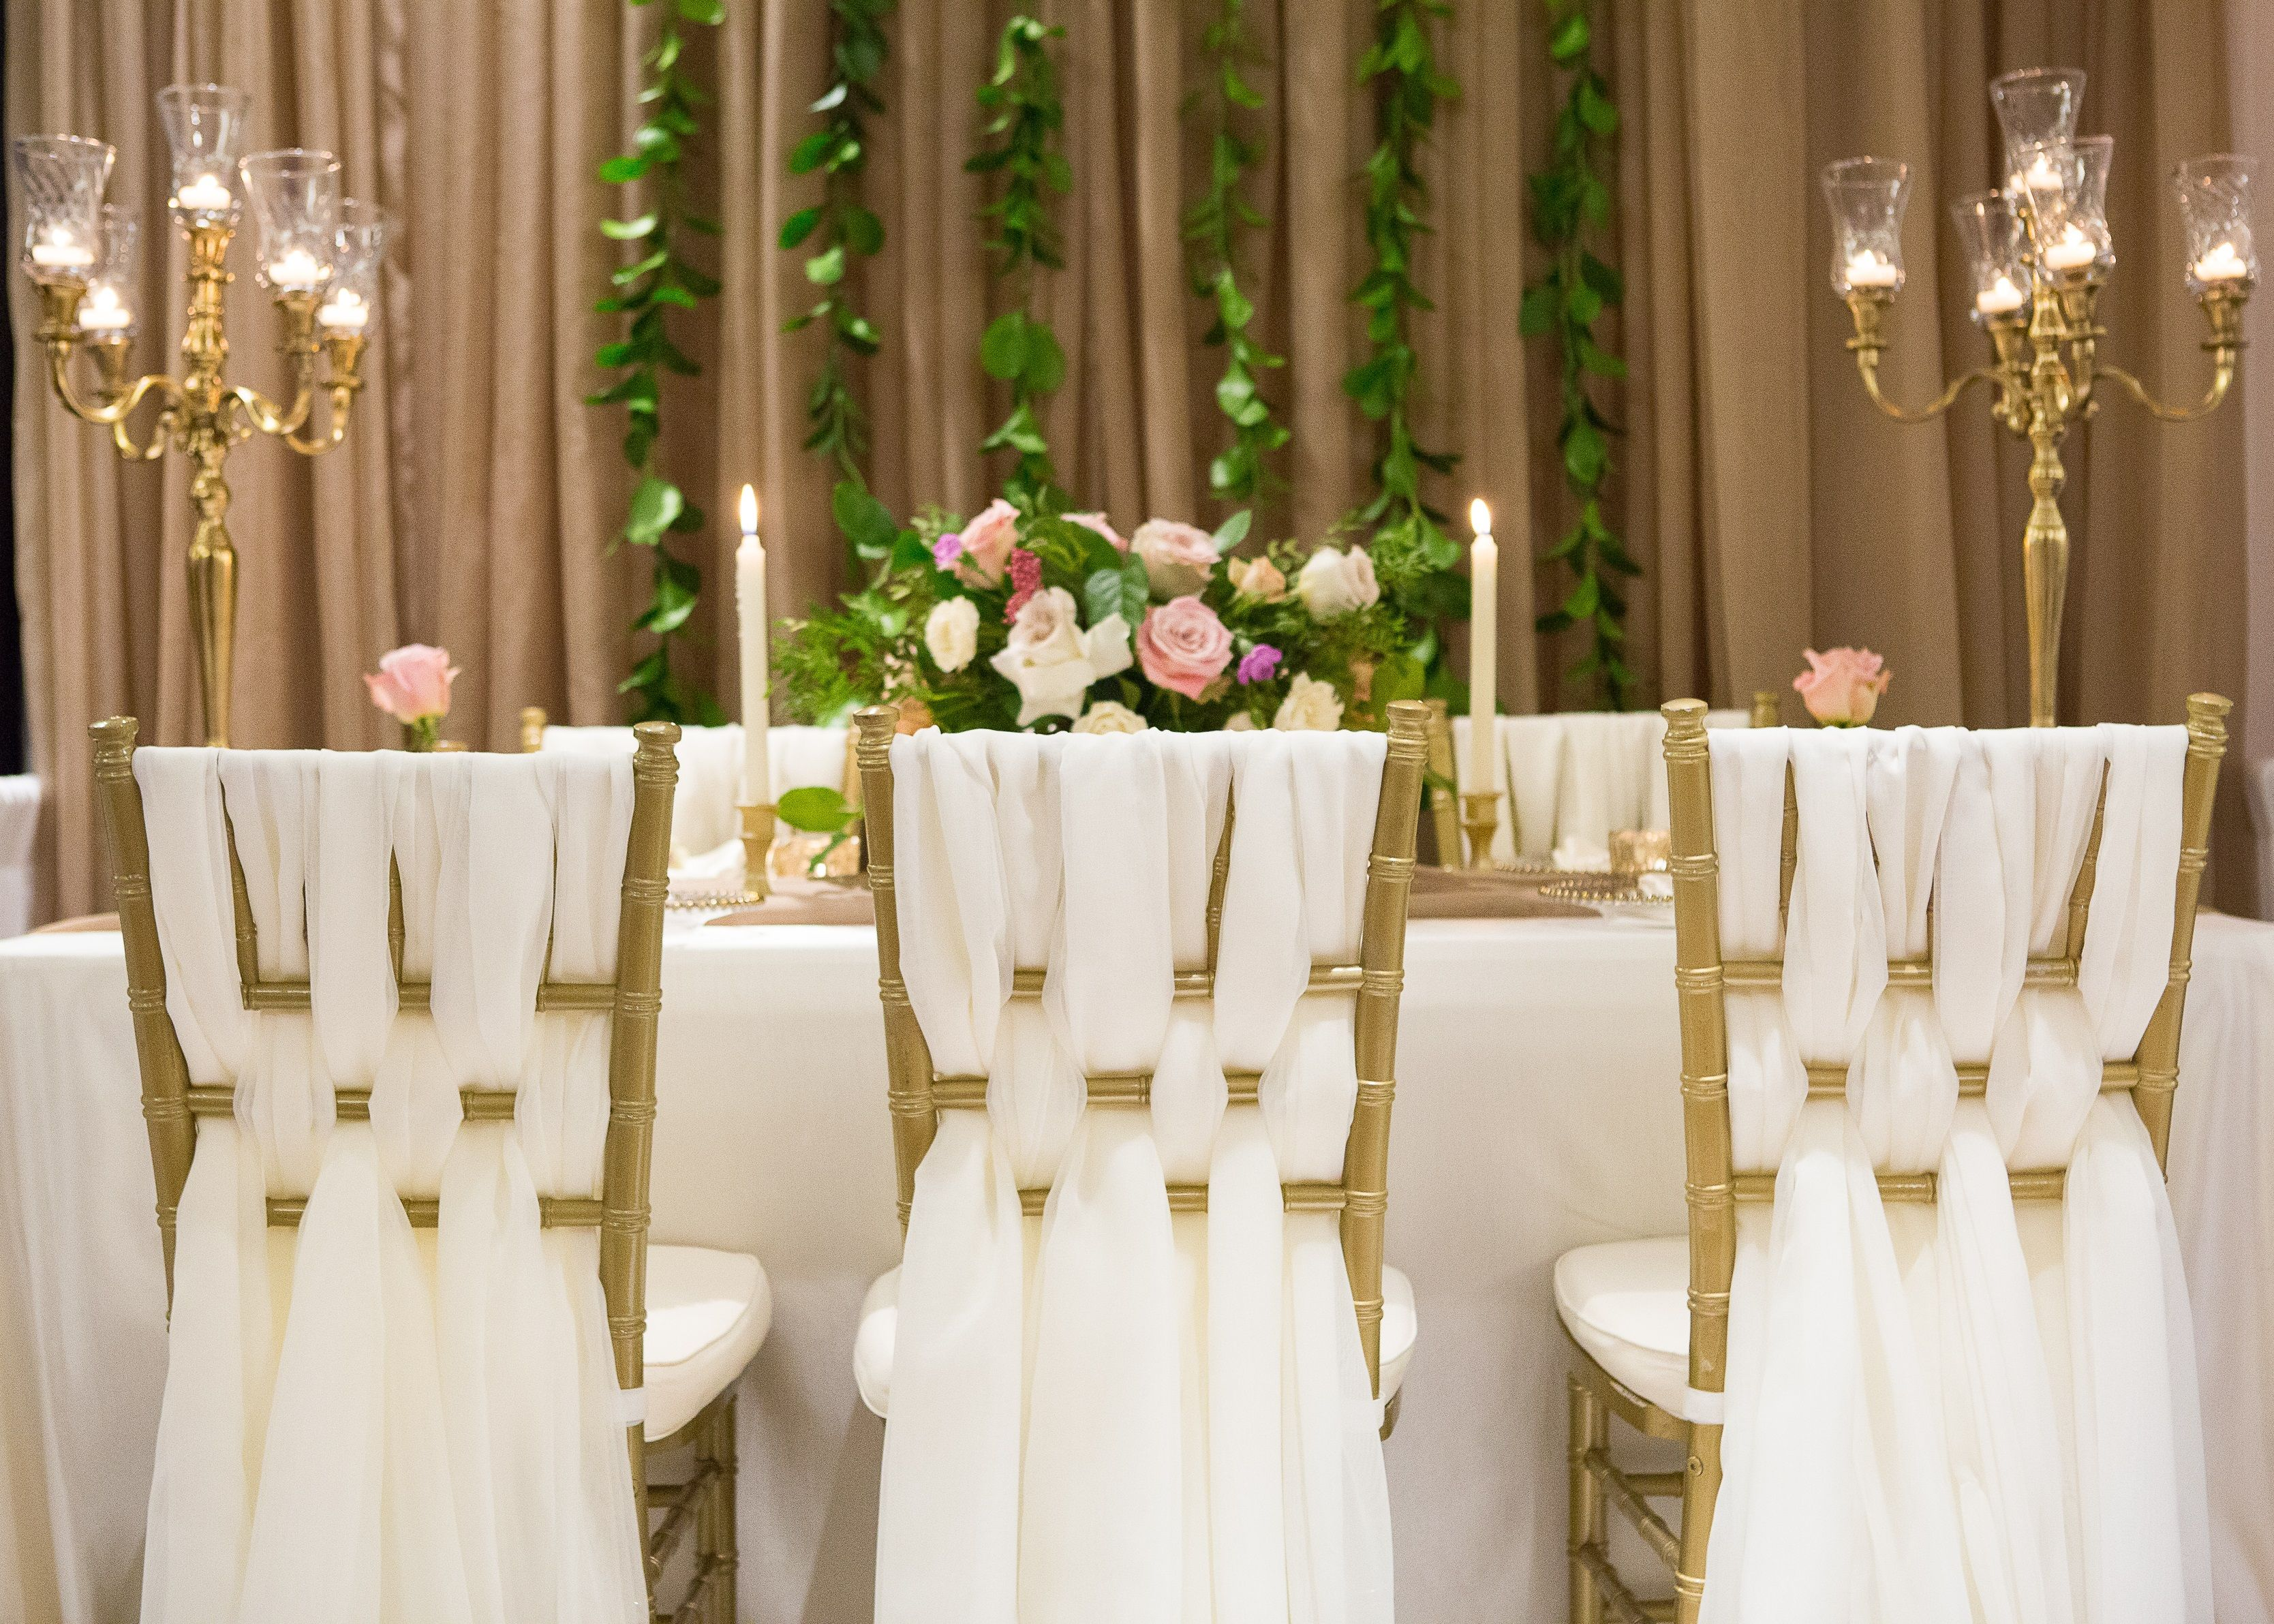 Wedding decorations backdrop  Taupe earthy toned backdrop chiavari chairs with woven fabric gold